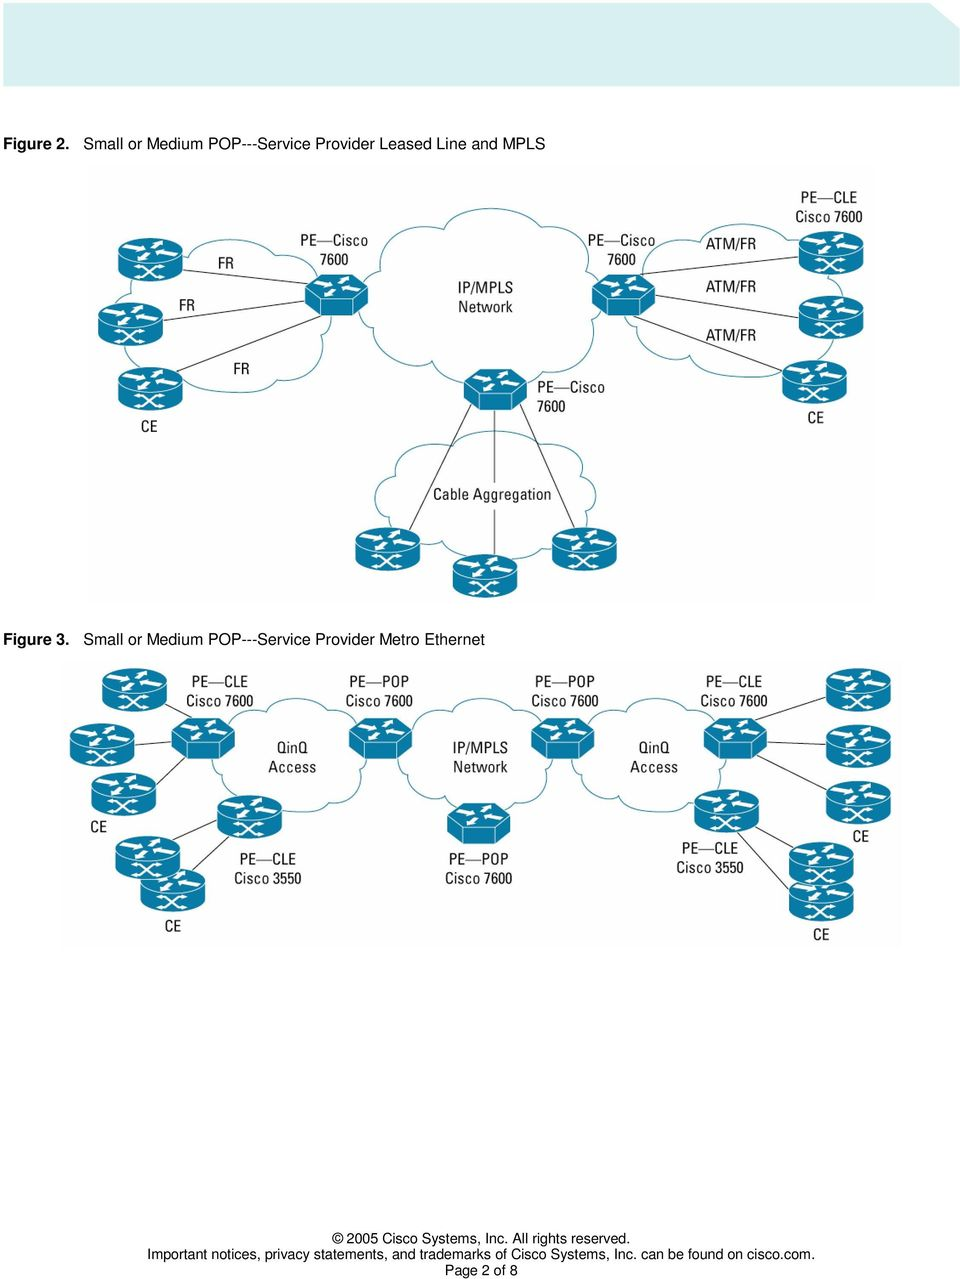 Provider Leased Line and MPLS Figure